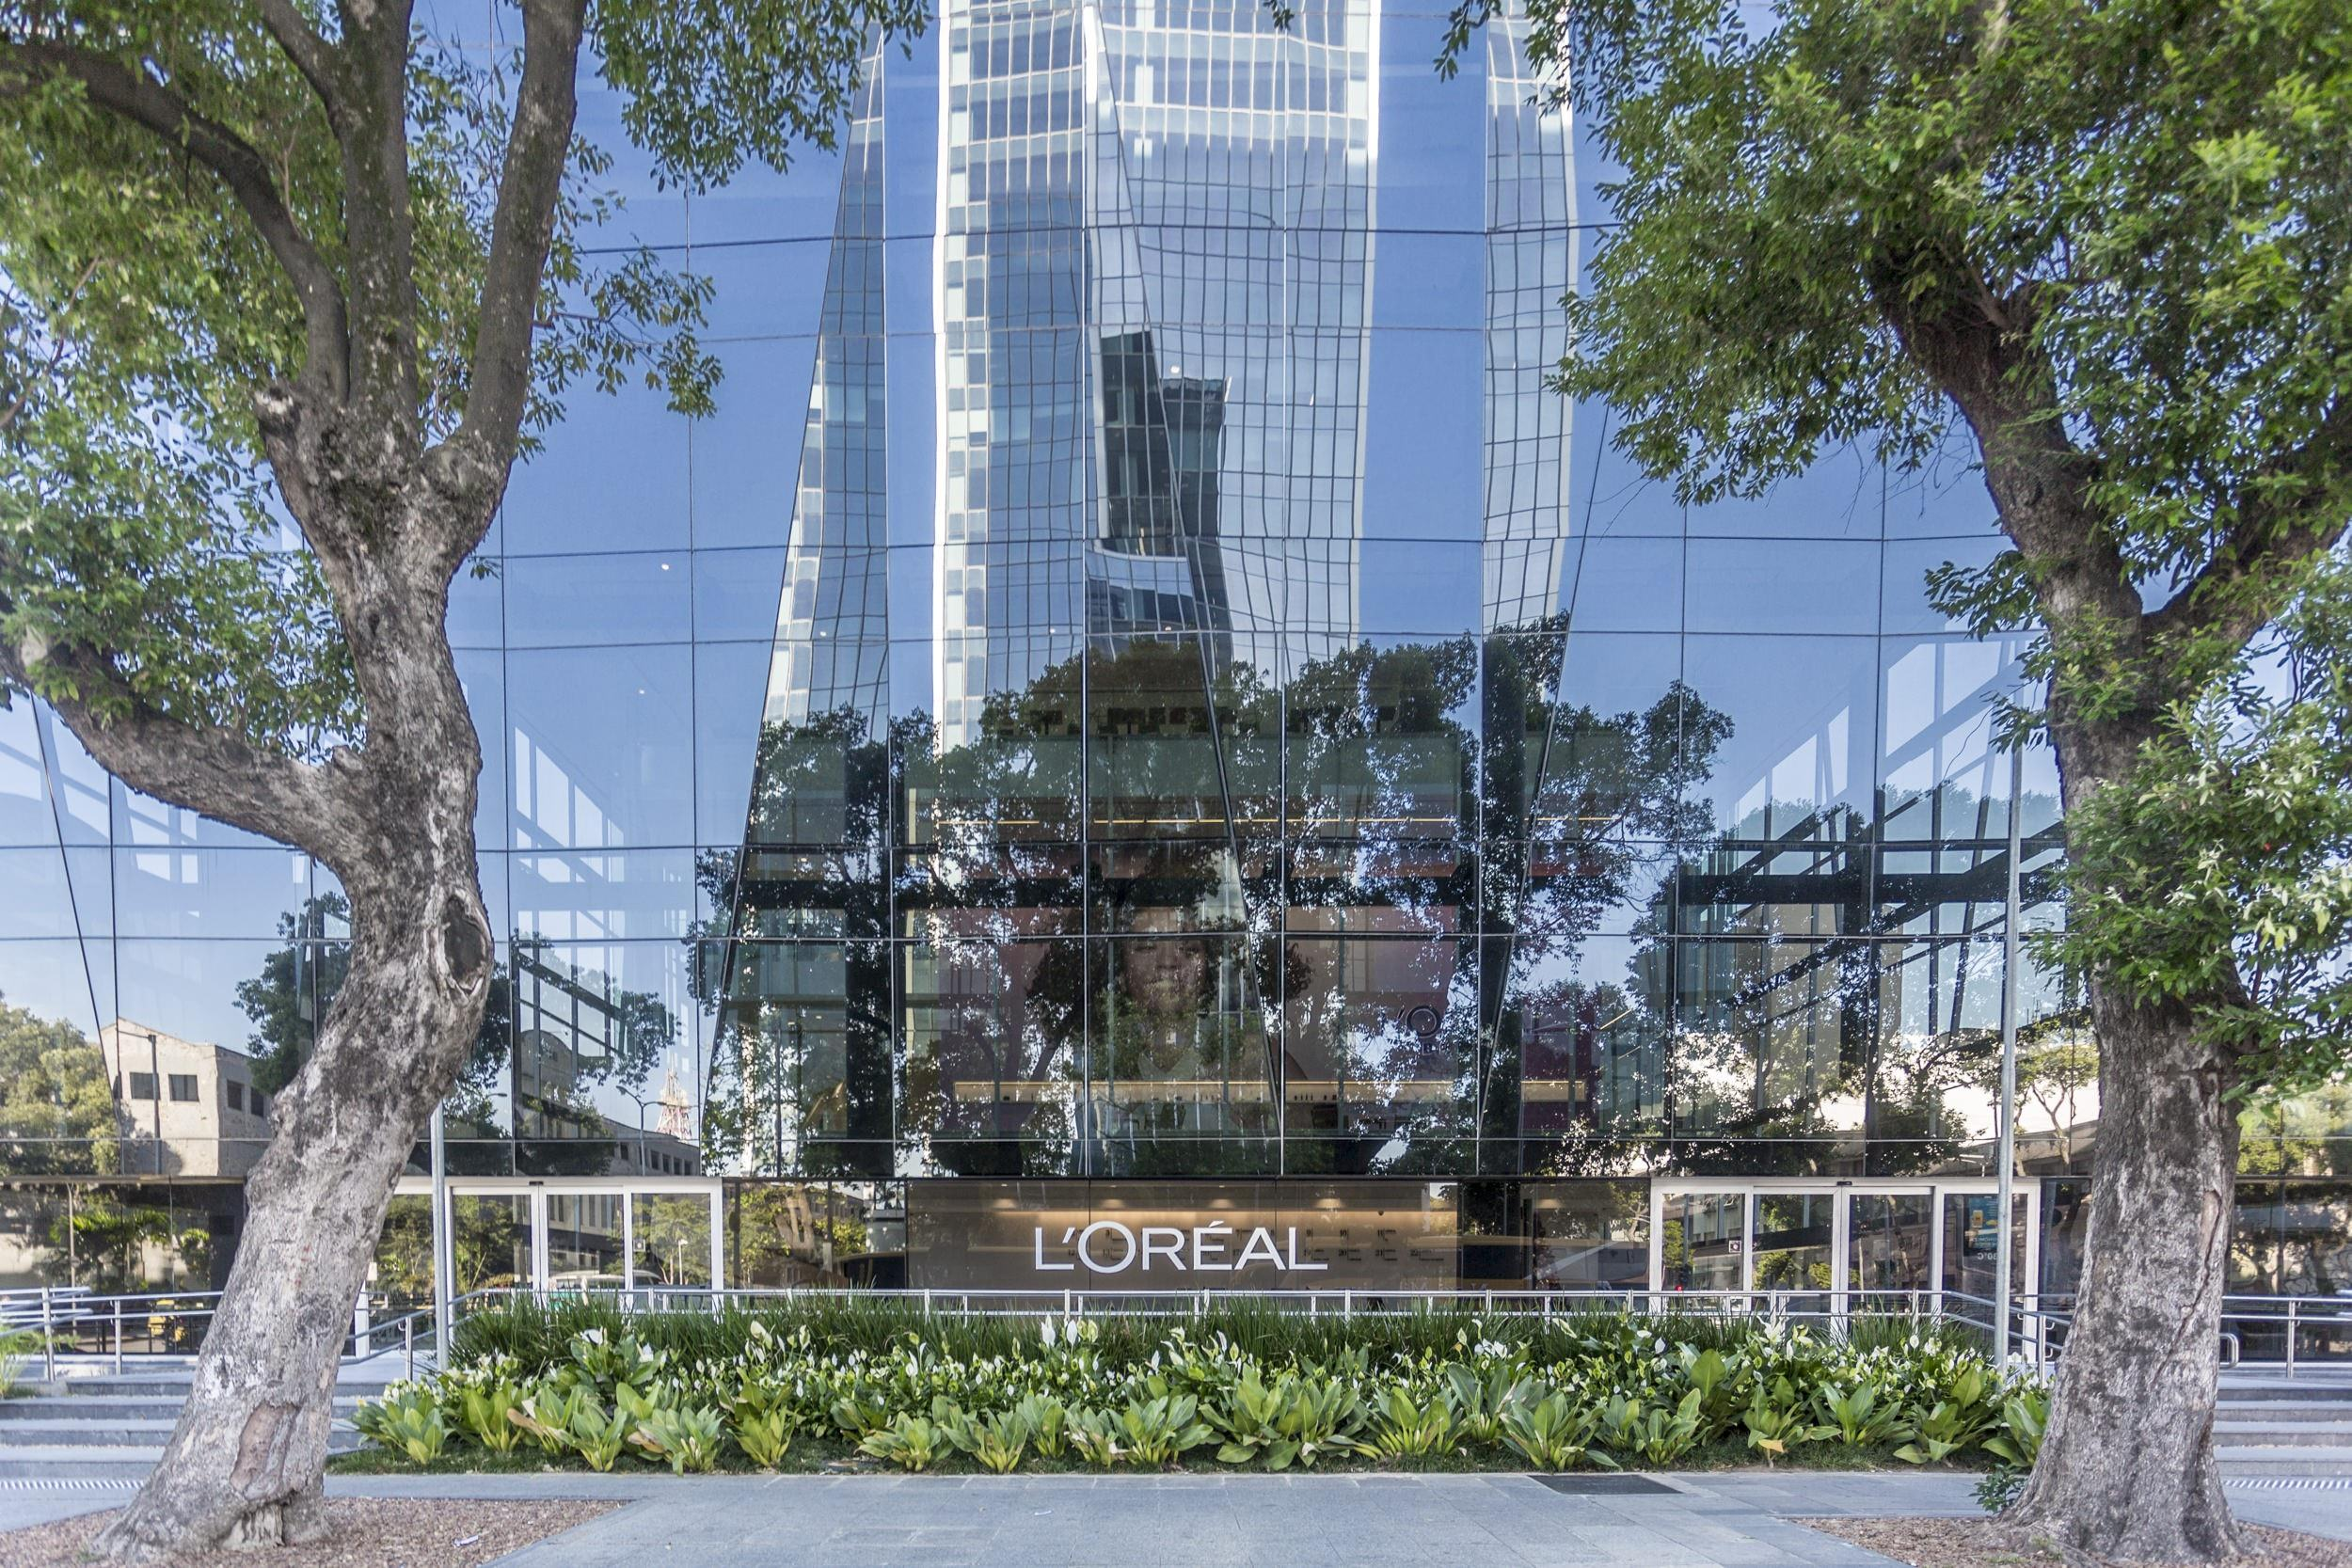 A photo taken from the sidewalk that is in front of a building that has a L'oreal sign on the front